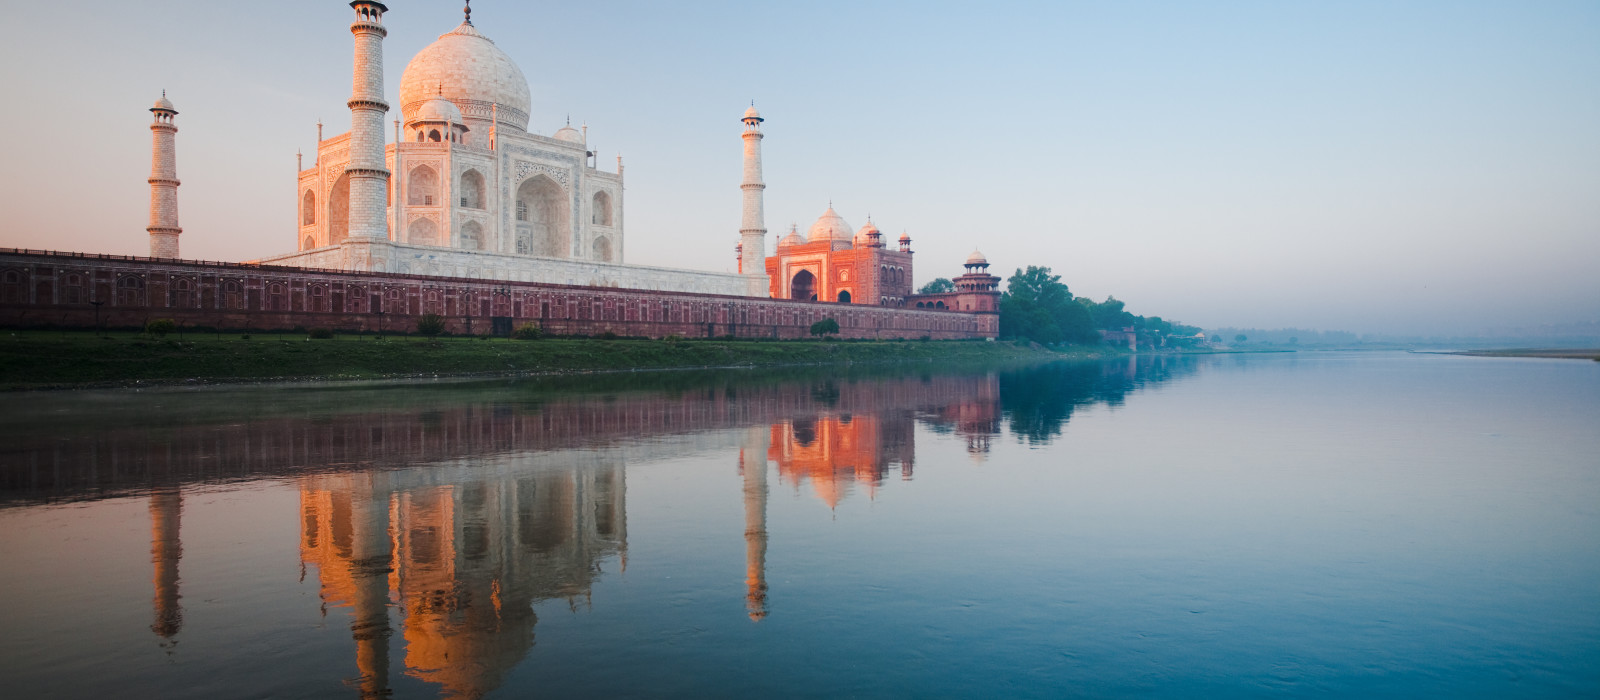 India's Golden Triangle and Tigers Tour Trip 1